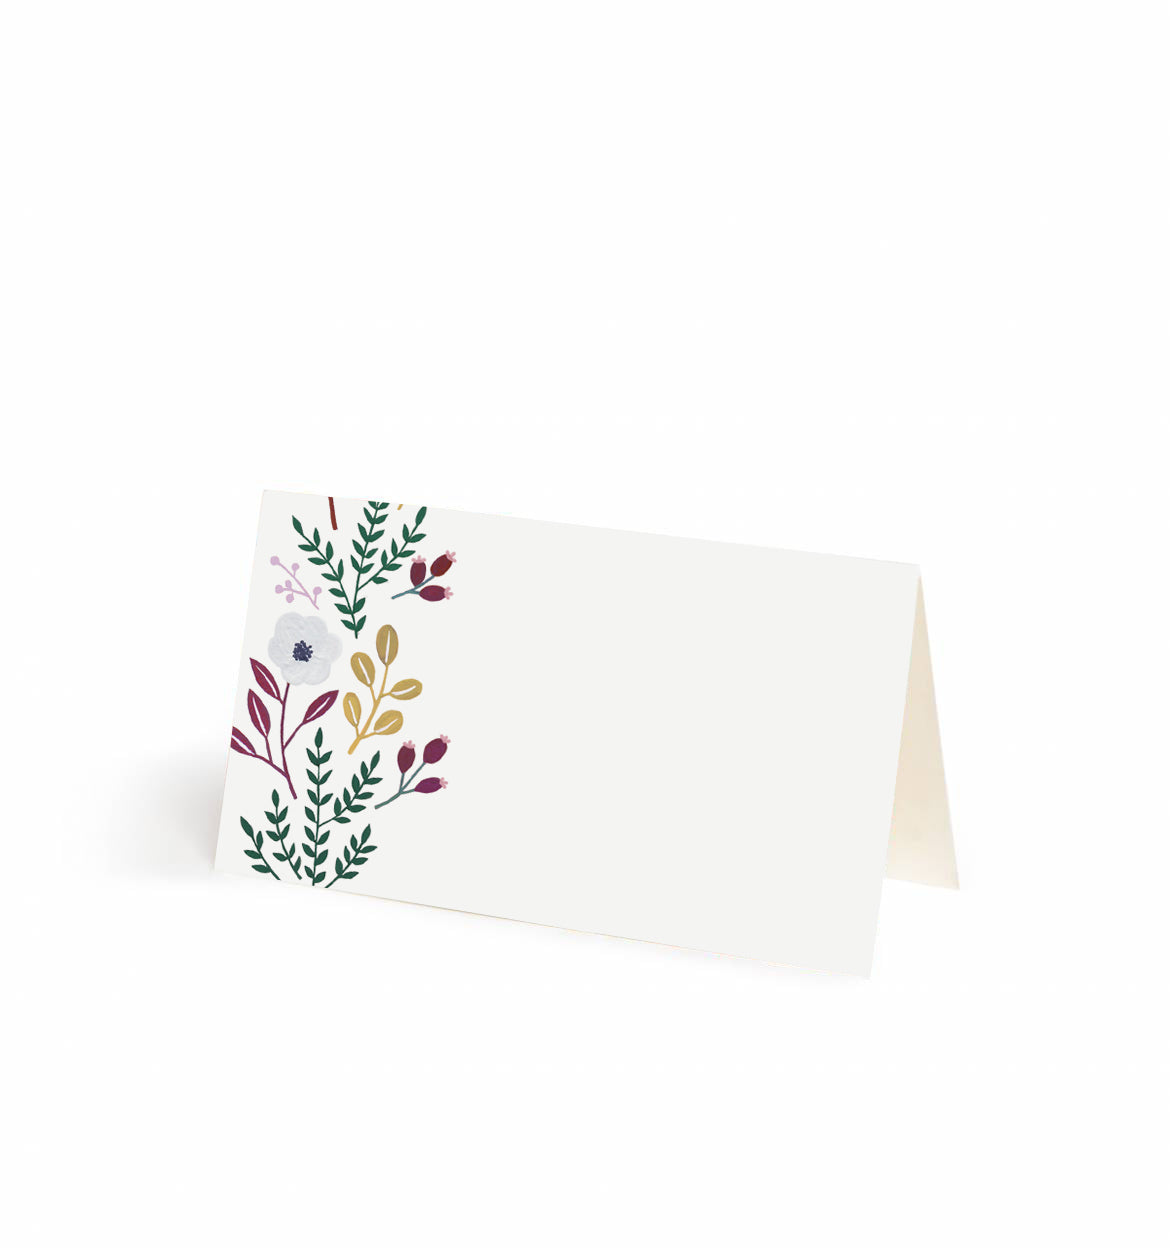 Seriously Your Likes Kindness And Words Of Encouragement Mean The World To Me Celebrate Were Giving Away These Free Printable Place Cards